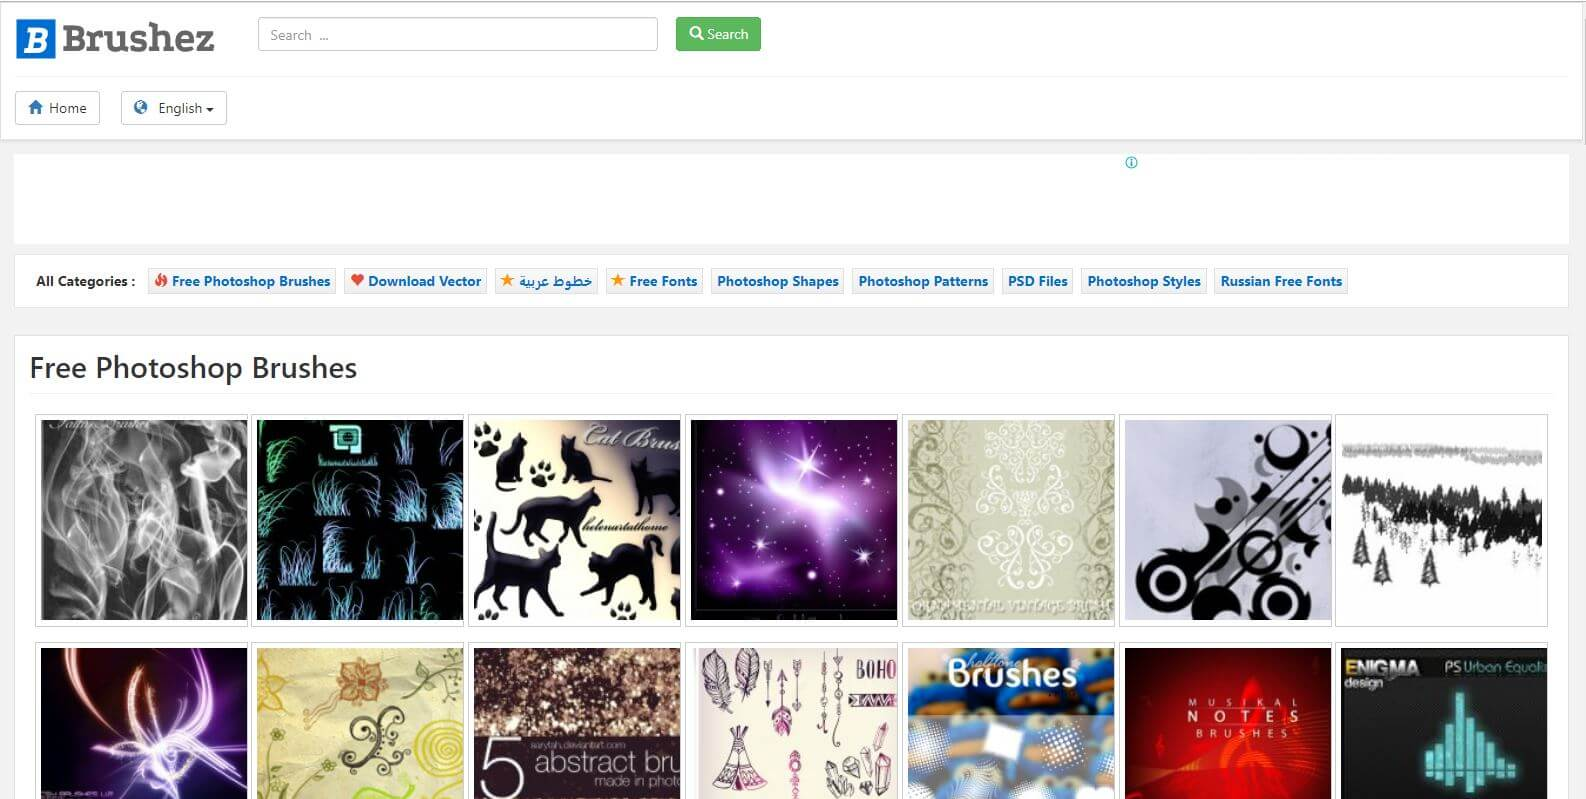 14-2 - Best 14 Websites to Download Free Photoshop Brushes